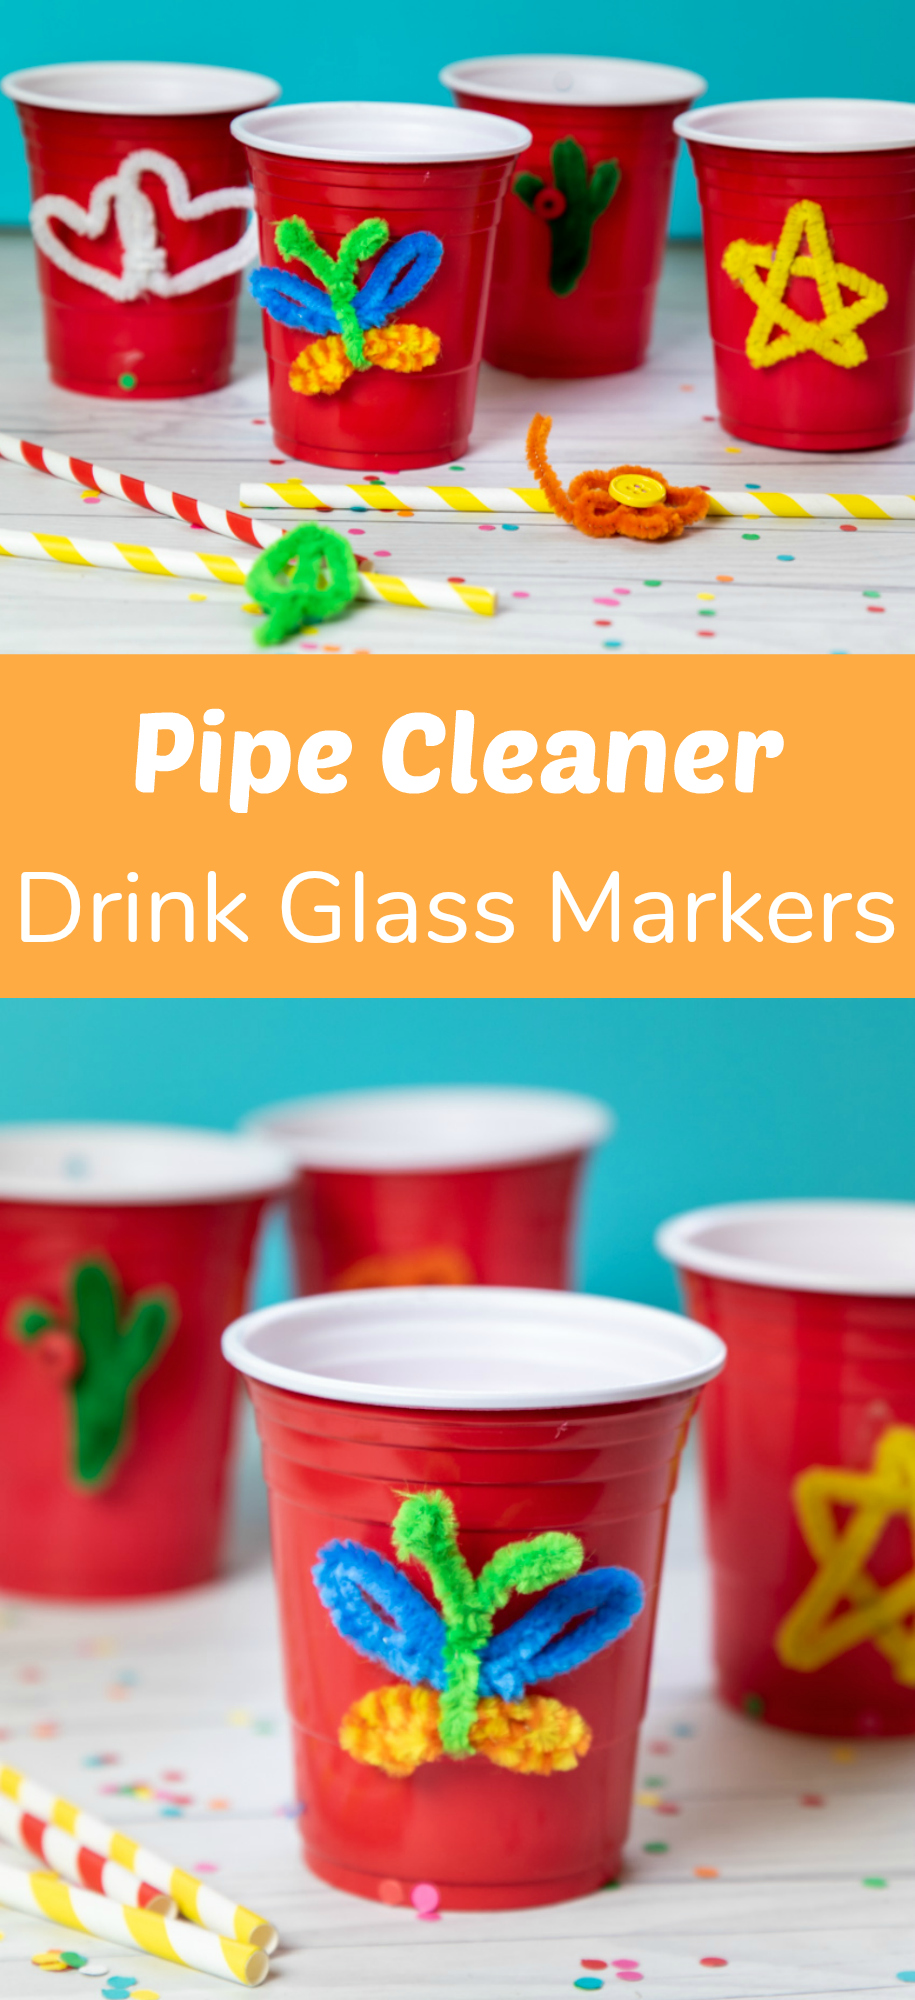 Pipe Cleaner Drink Glass Markers